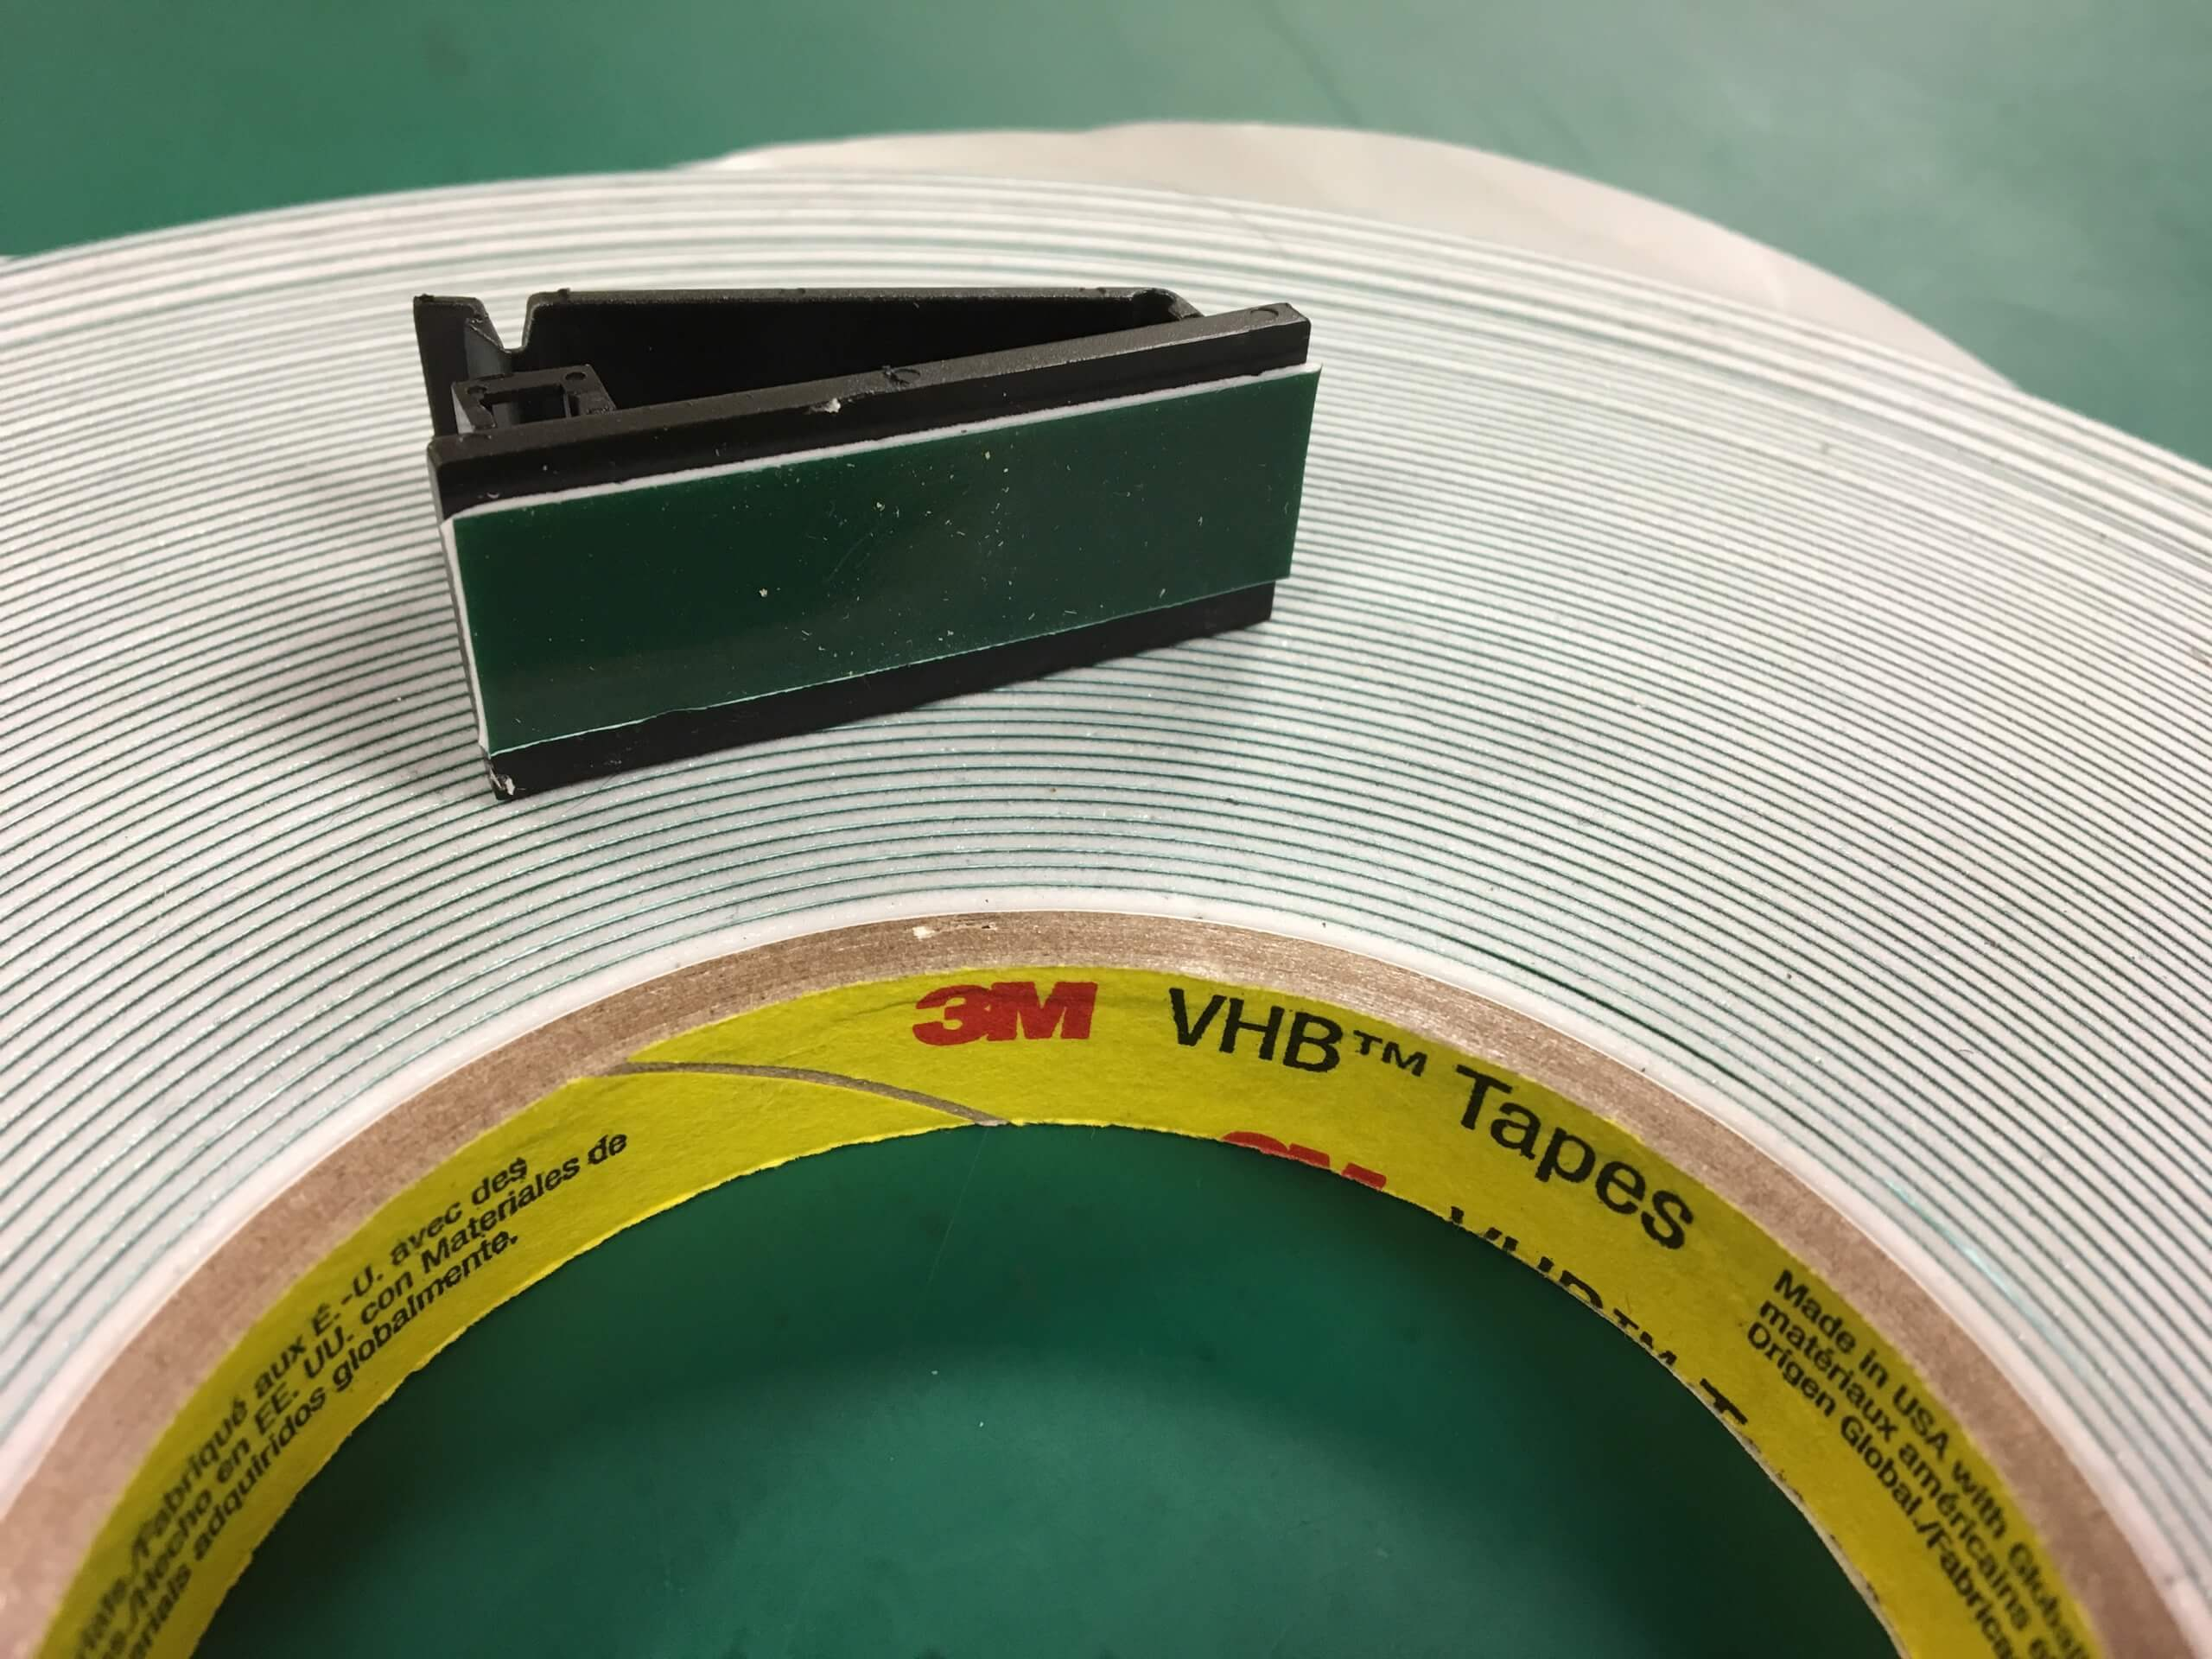 Image #13 Replacing Stock Tape With 3M VHB Tape